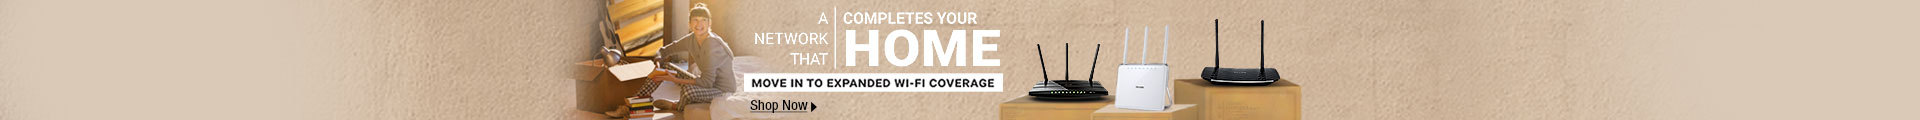 A Network That Completes Your Home